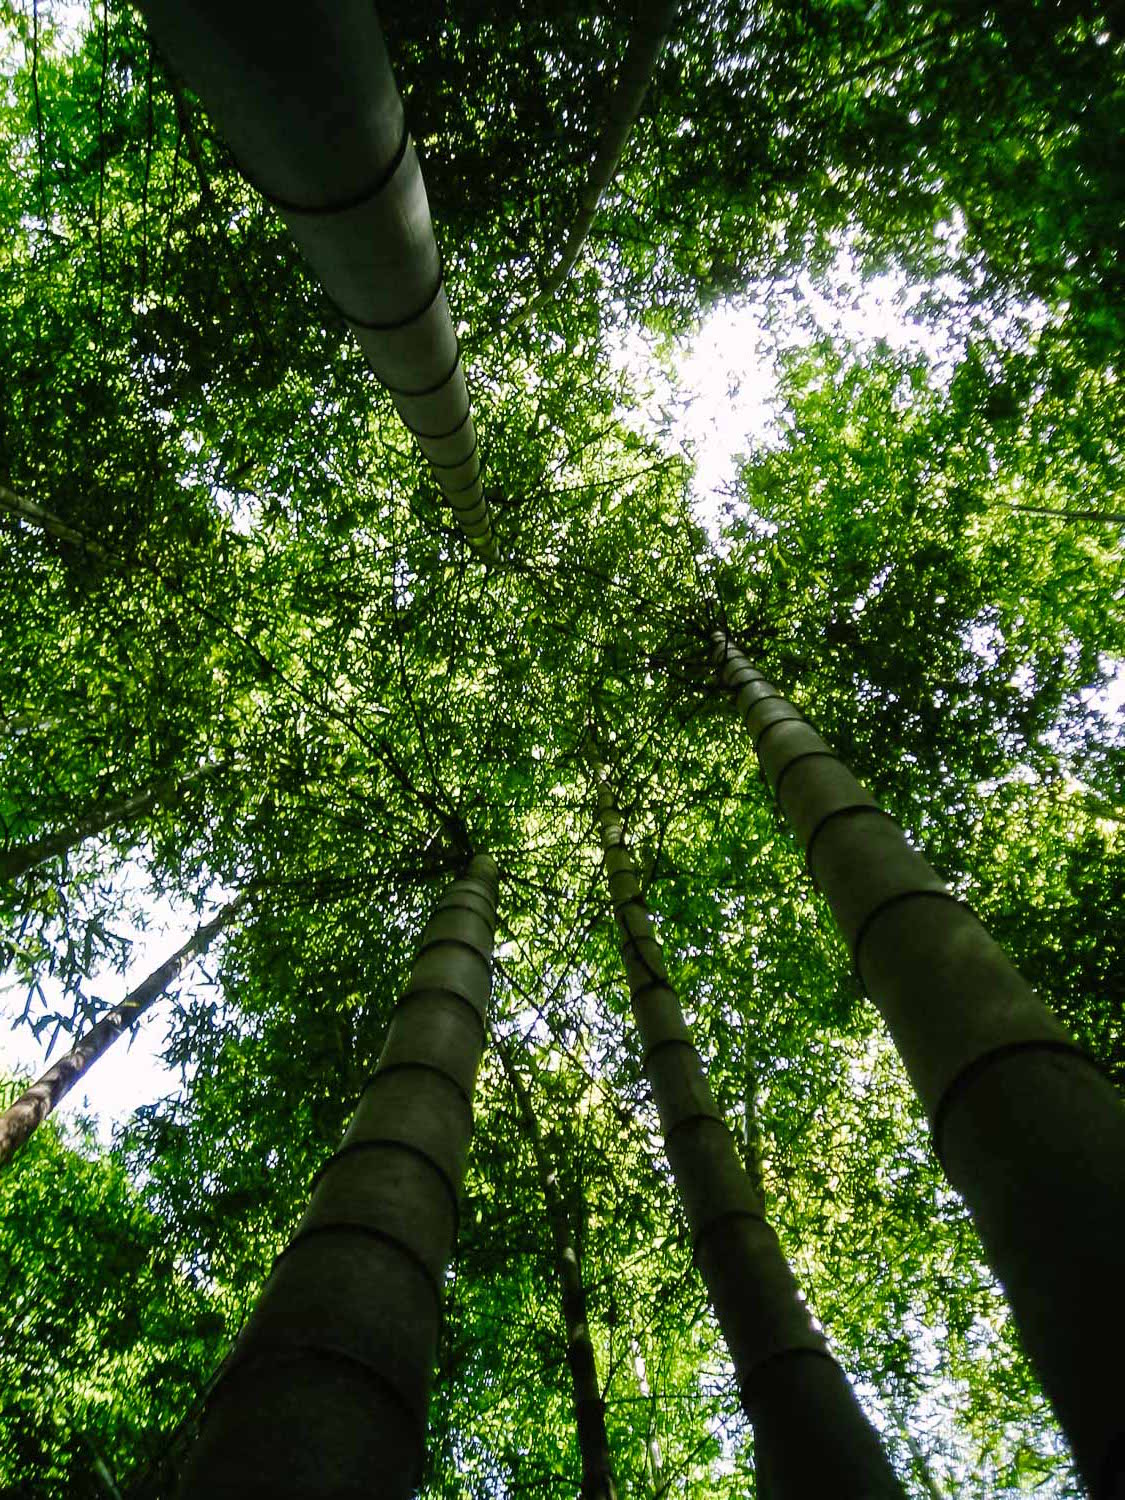 Trees-Green-Bamboo-Forest-Japan-Durazo-Photographer.jpg